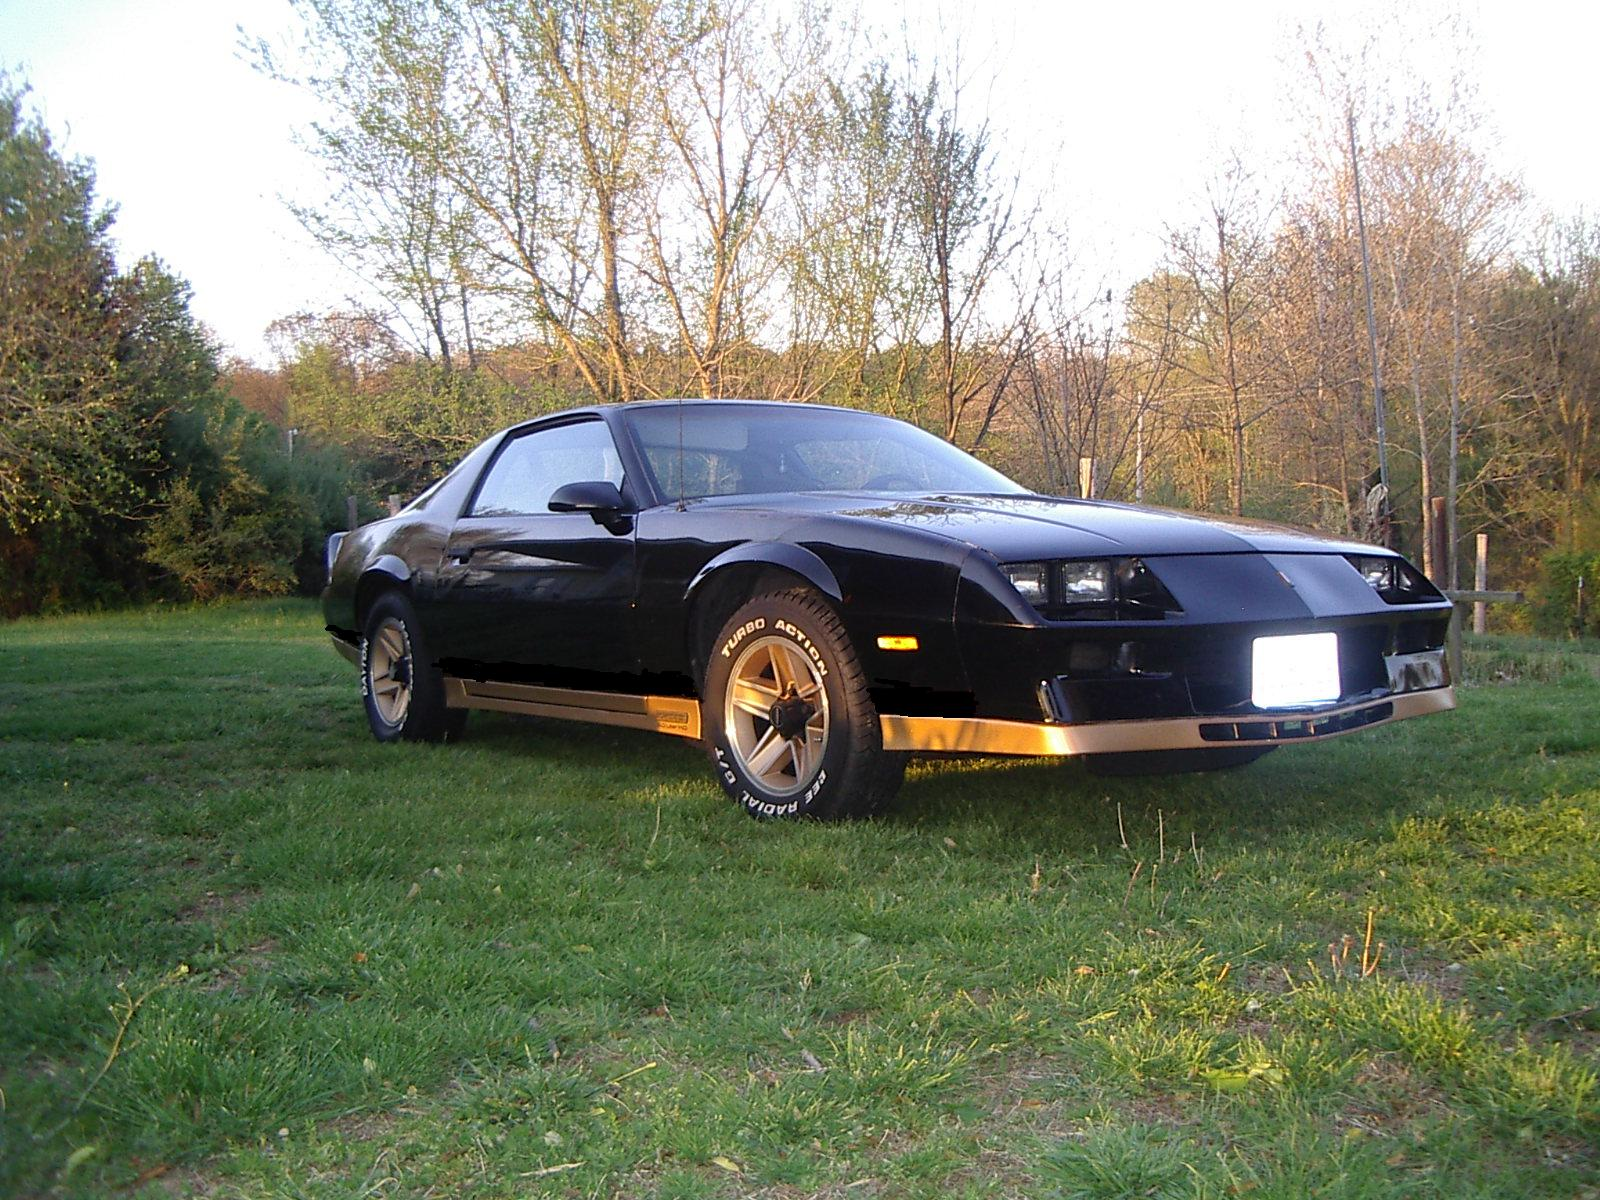 Tf567155 likewise Photos moreover 1999 CHEVROLET CORVETTE CUSTOM COUPE 71099 besides 1984 Chevrolet Camaro Pictures C3683 additionally 1401 2007 Chevrolet Tahoe Progress To Perfection. on 2000 chevy tahoe black